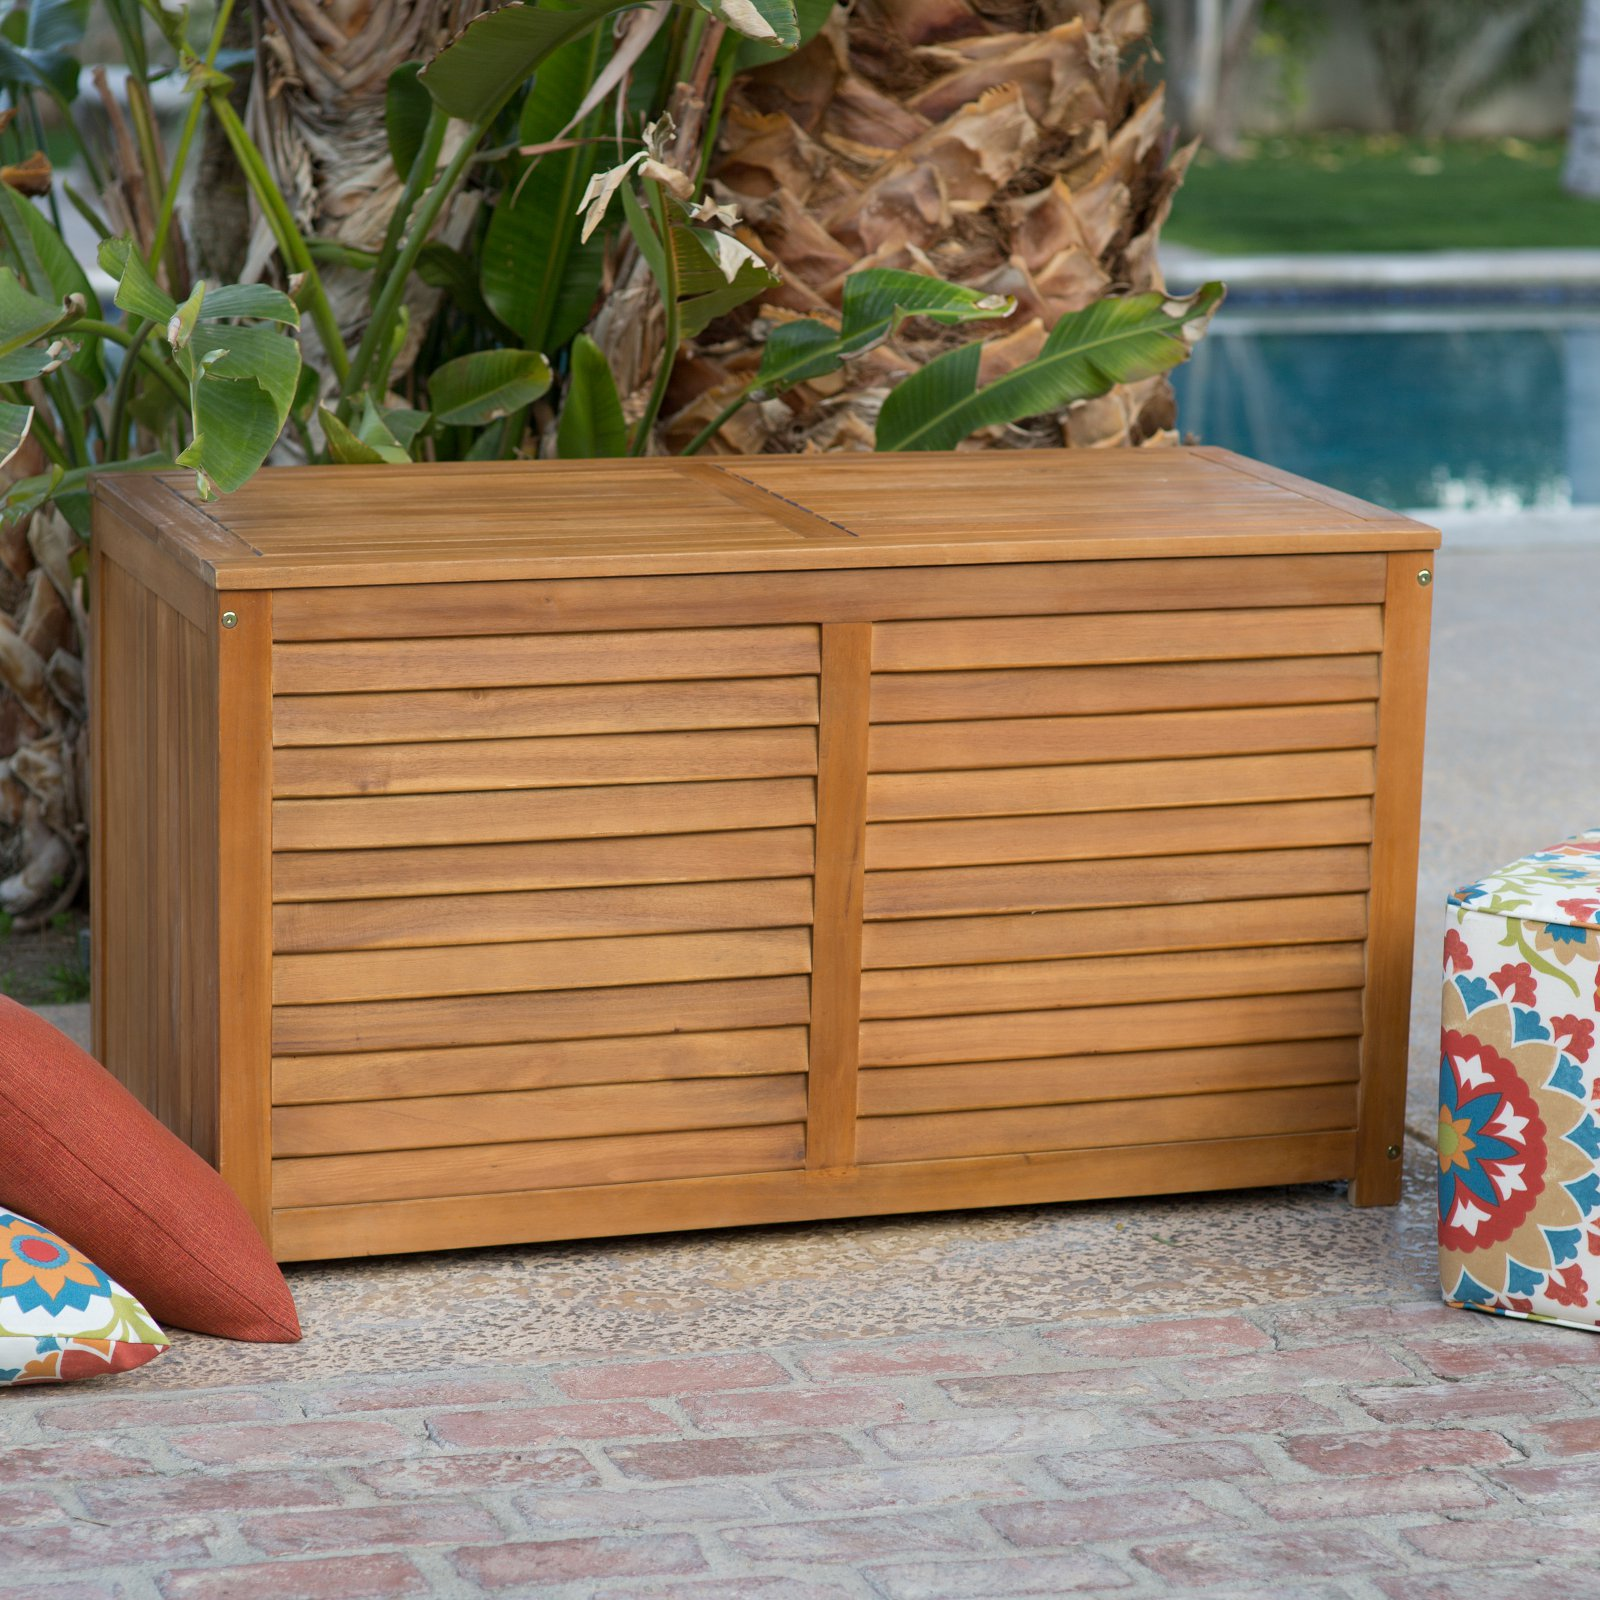 Incroyable Coral Coast Atwood 90 Gallon Outdoor Wood Storage Deck Box